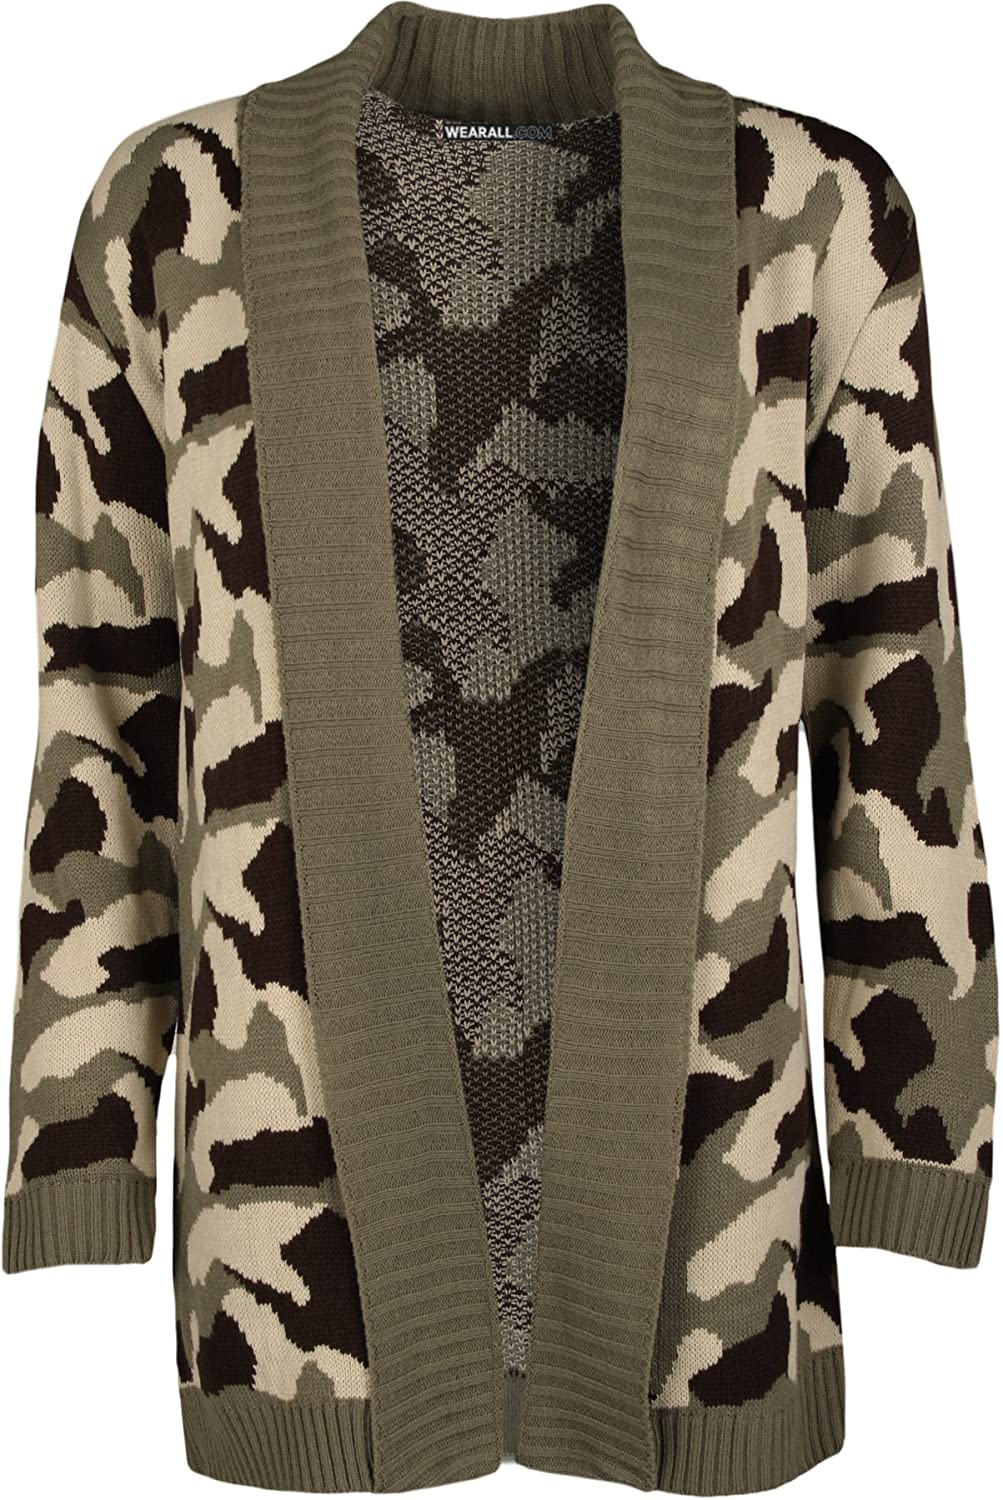 WearAll Womens Camouflage Pattern Long Sleeve Cardigan